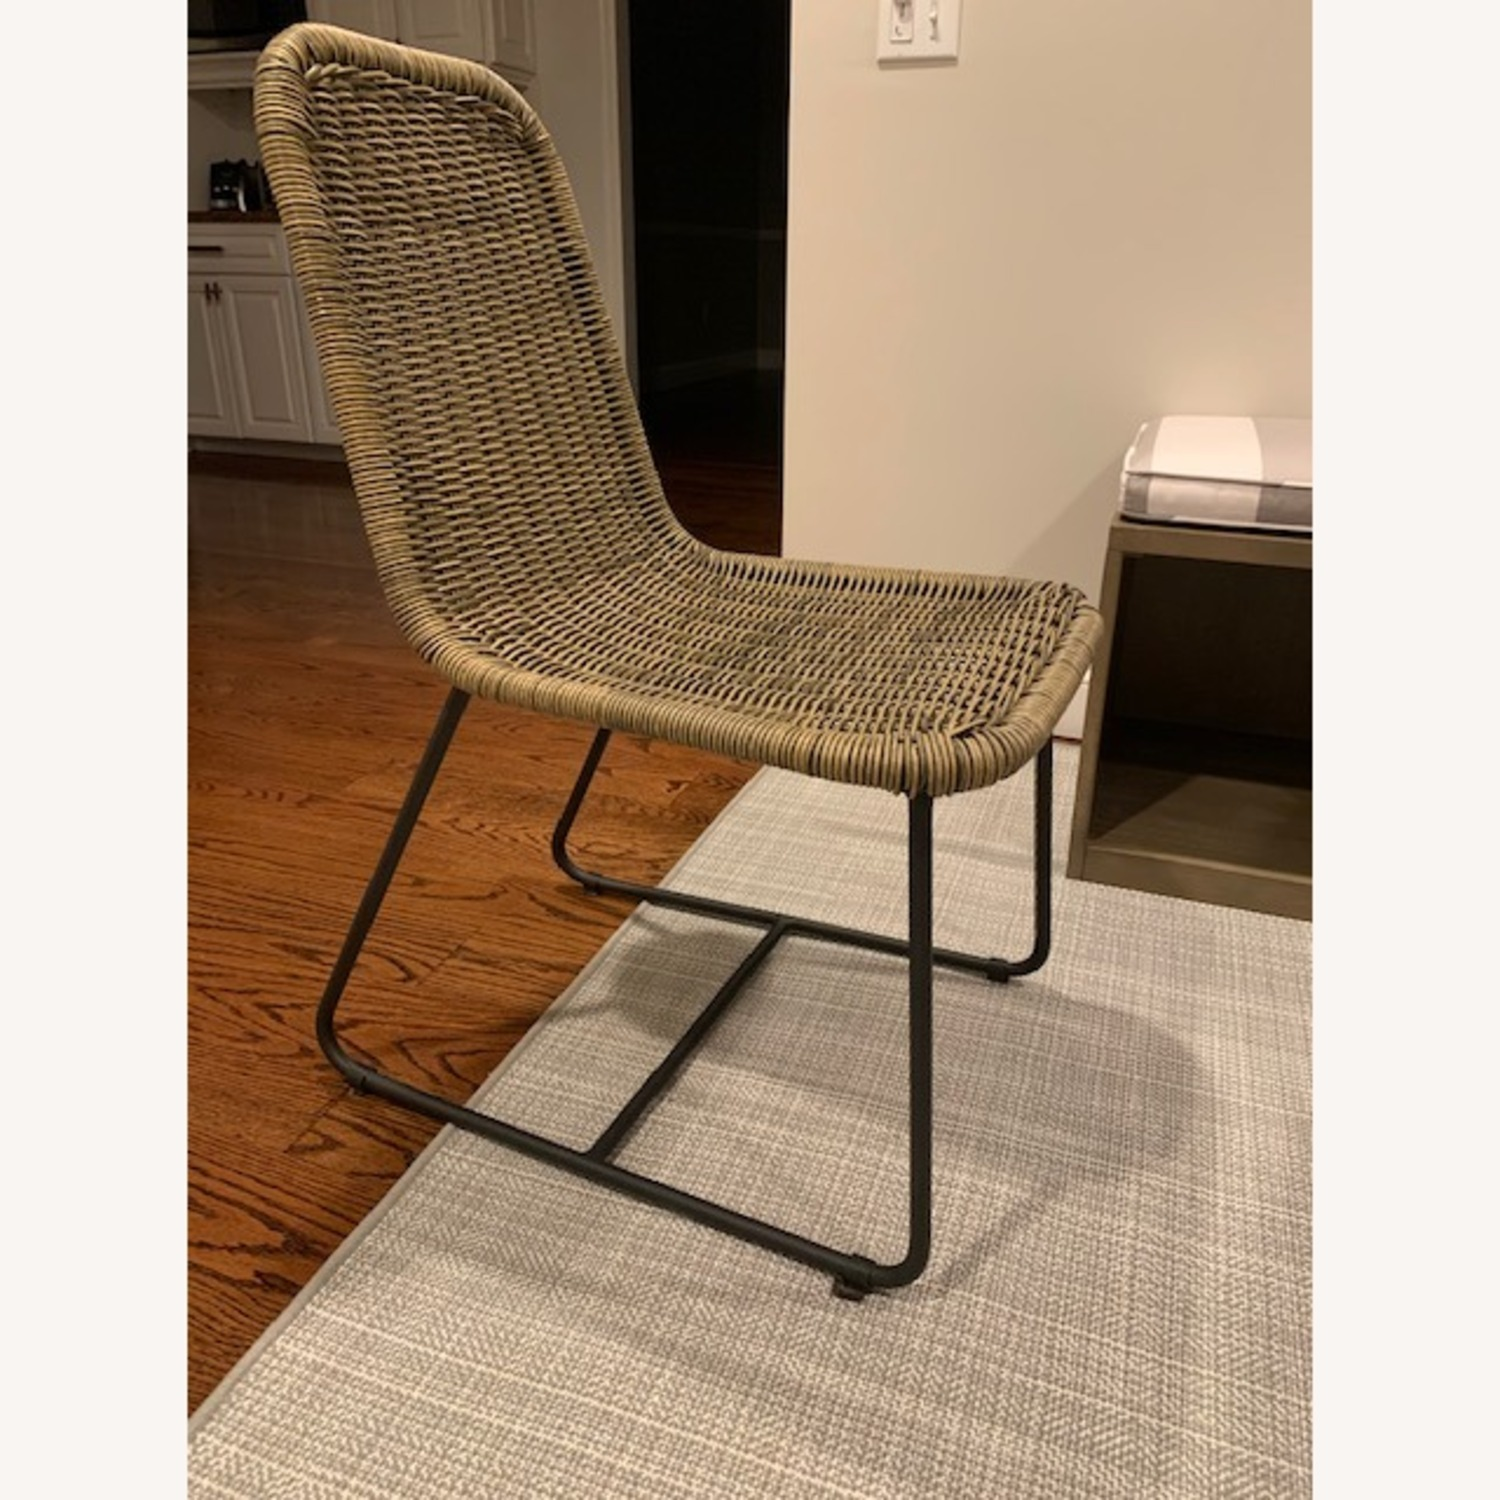 Pottery Barn Woven Grey Chairs - image-1